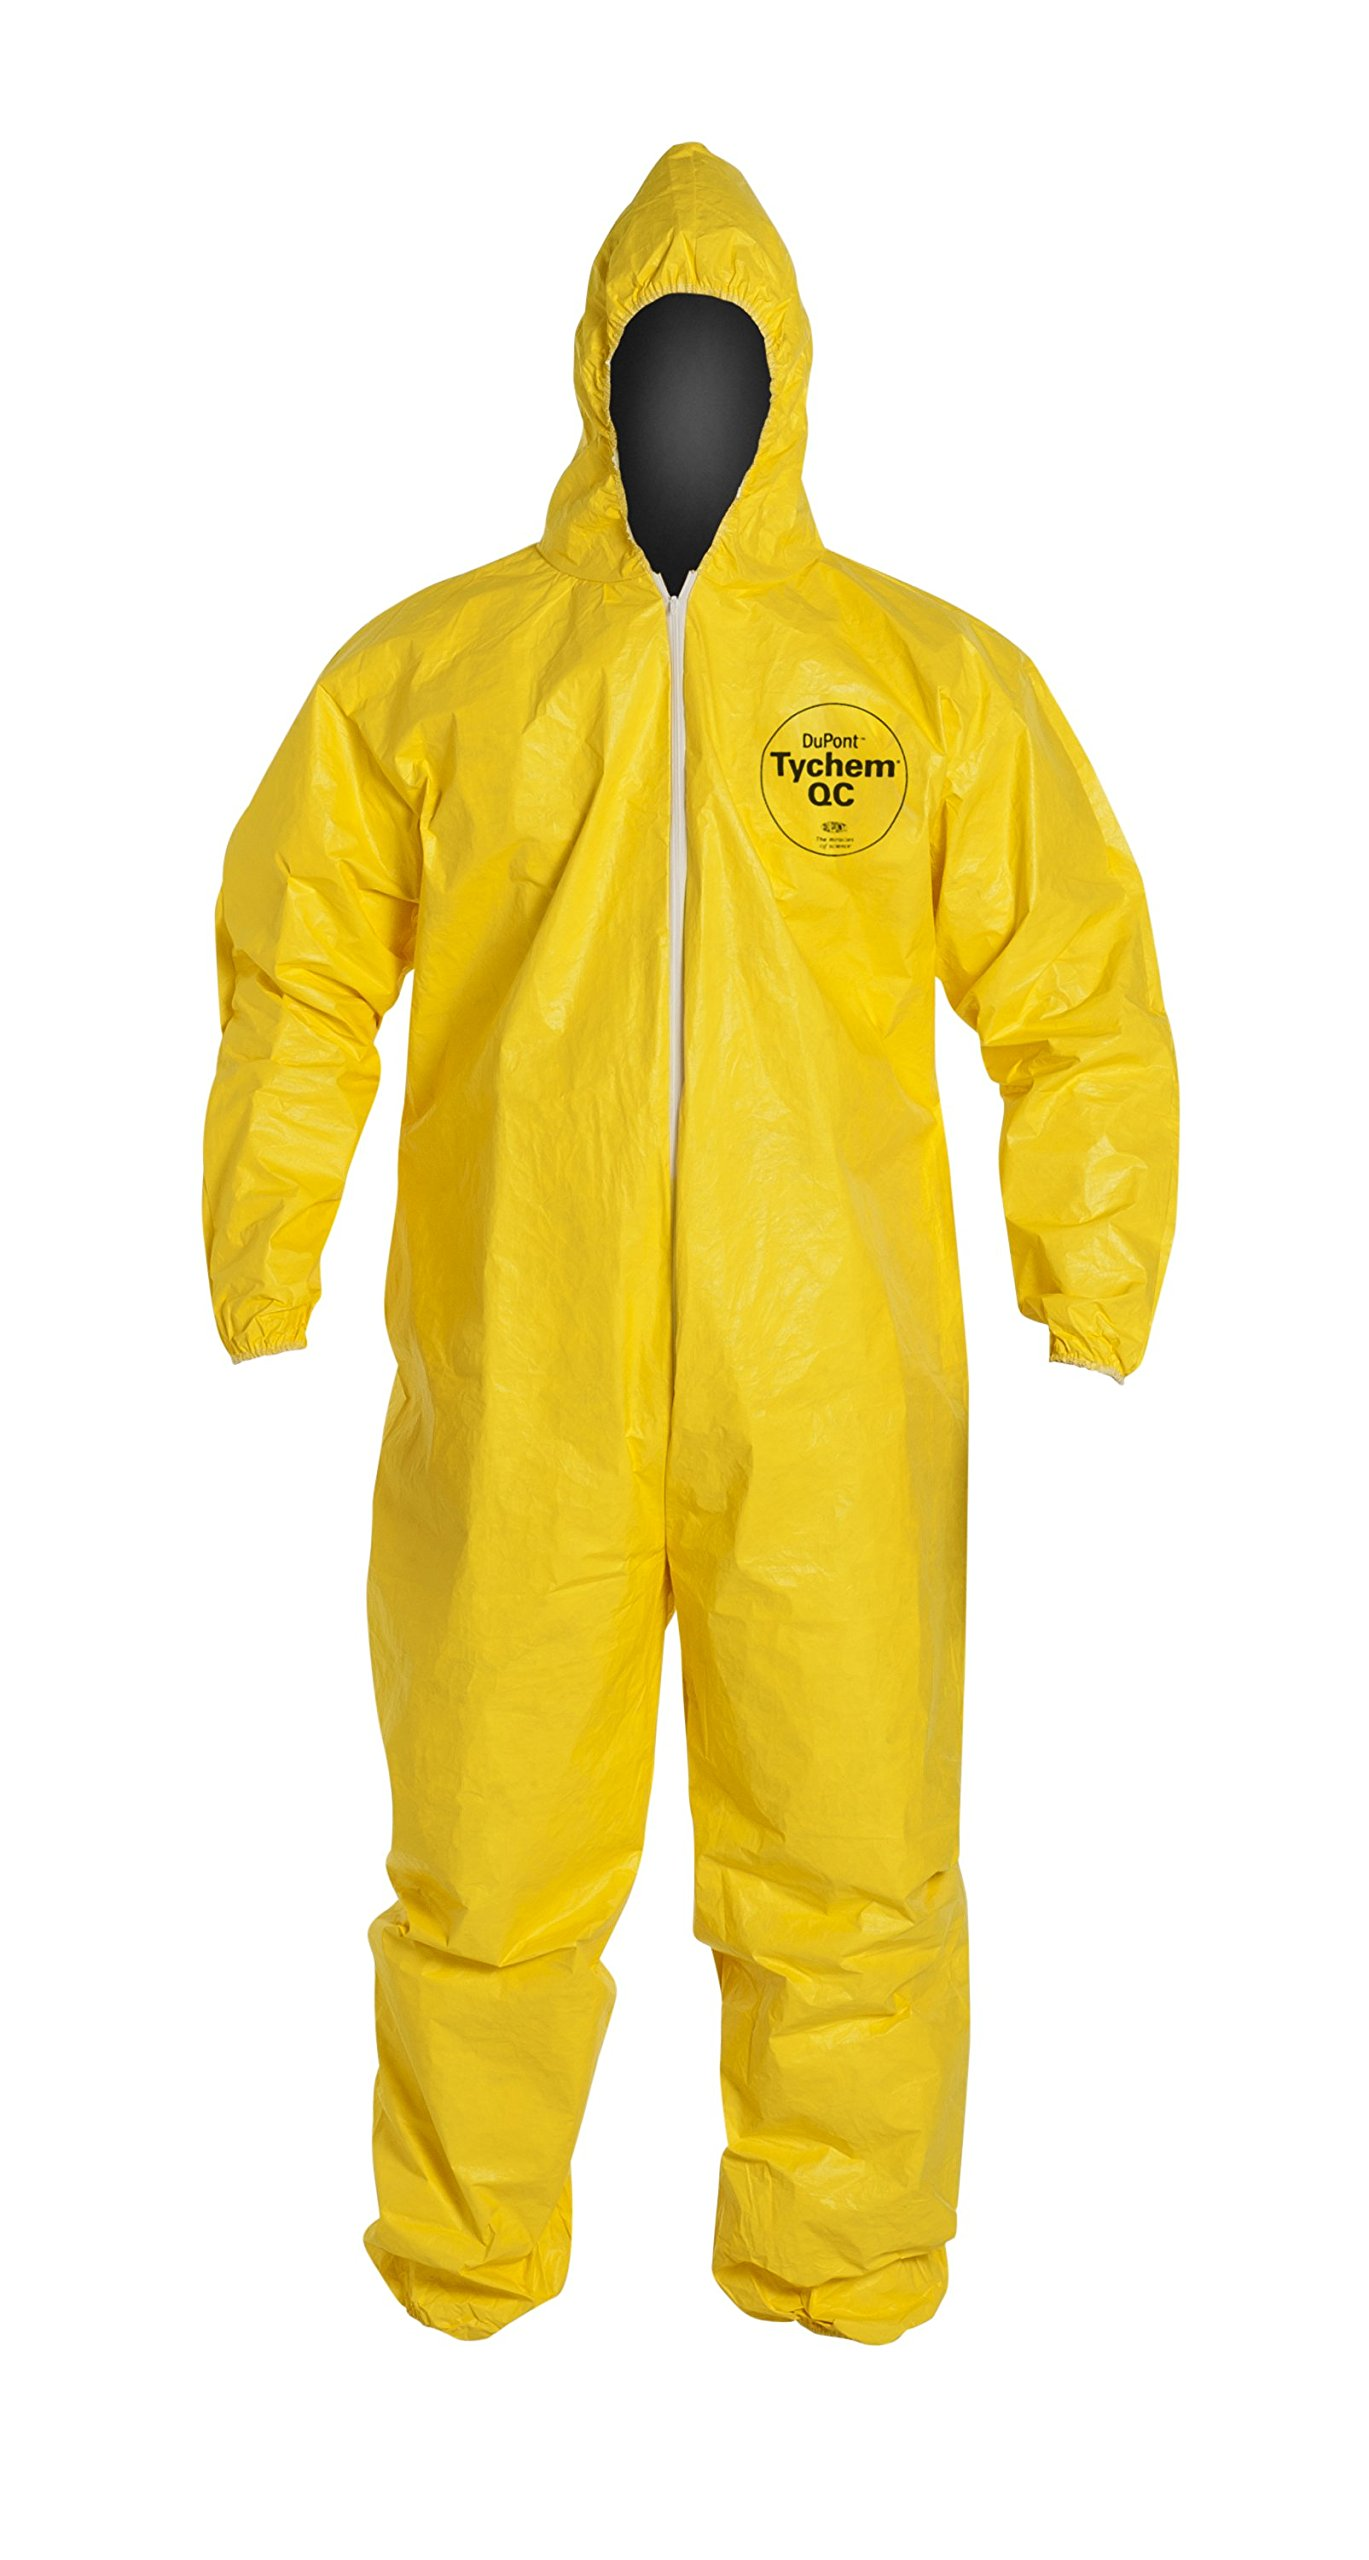 DuPont Tychem 2000 QC127S Disposable Chemical Resistant Coverall with Hood, Elastic Cuff and Serged Seams, Yellow, X-Large (Retail Pack of 1)